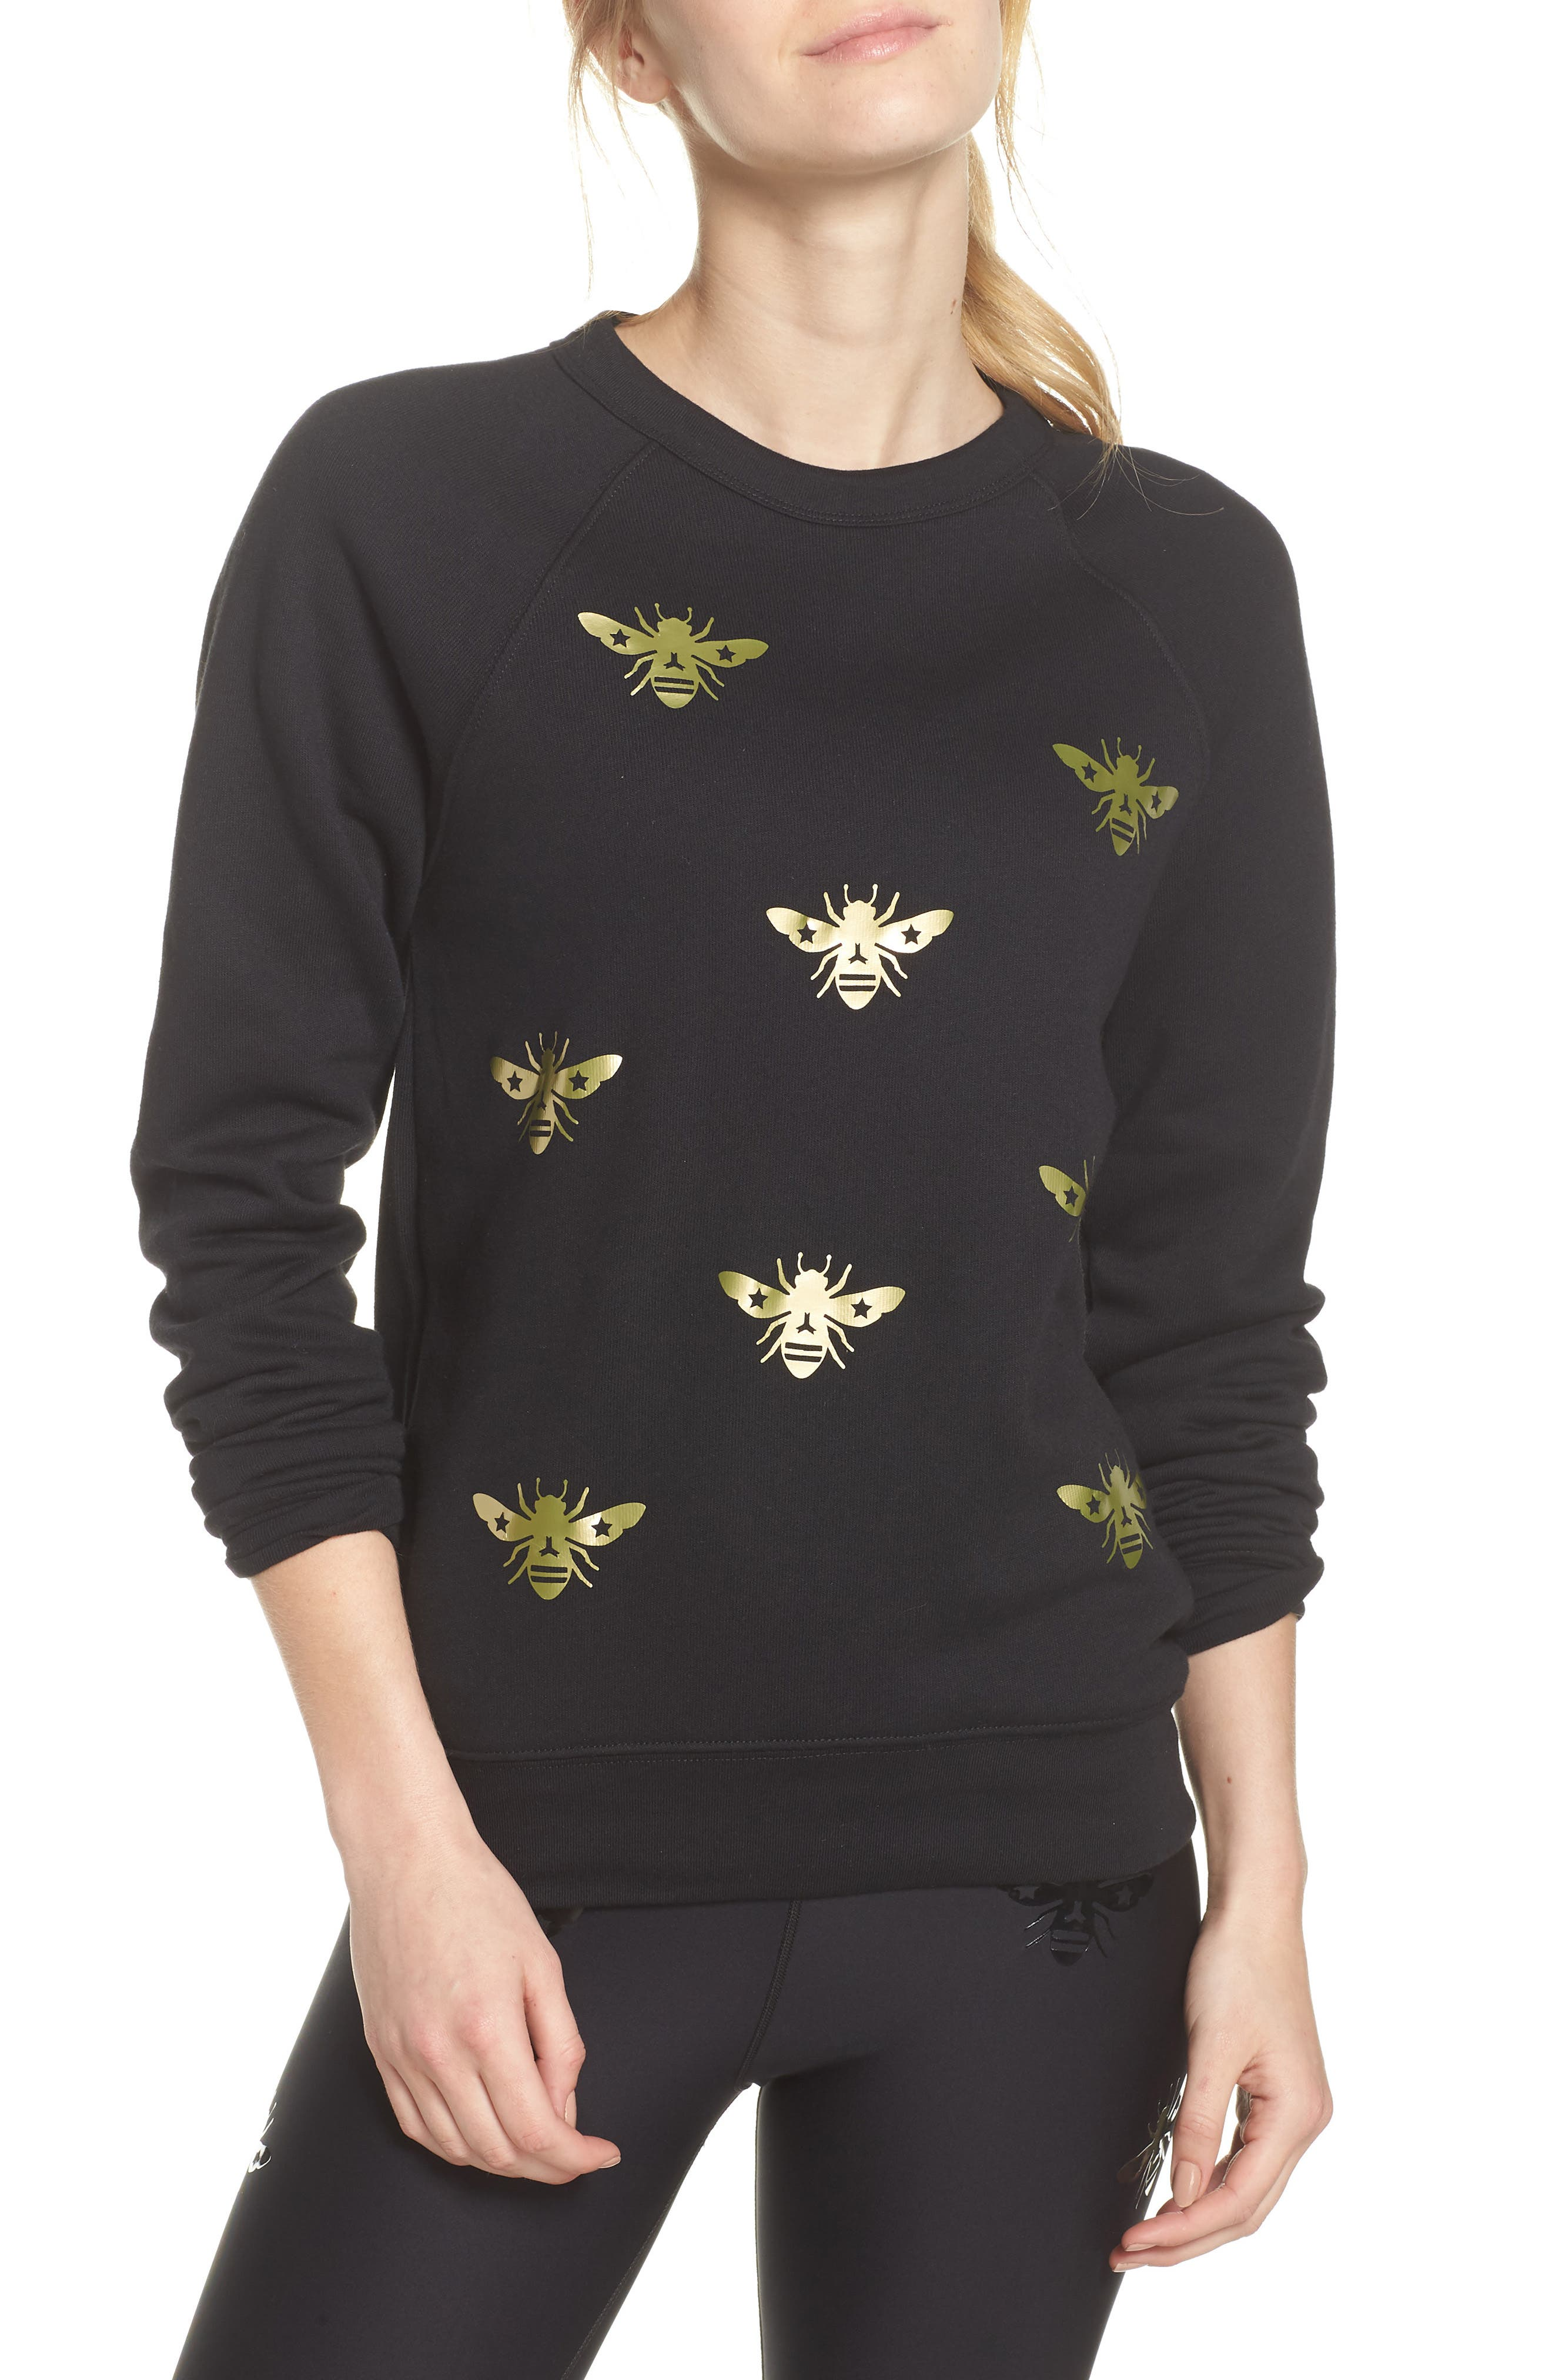 Bee Sweatshirt,                             Main thumbnail 1, color,                             Nero/ Gold